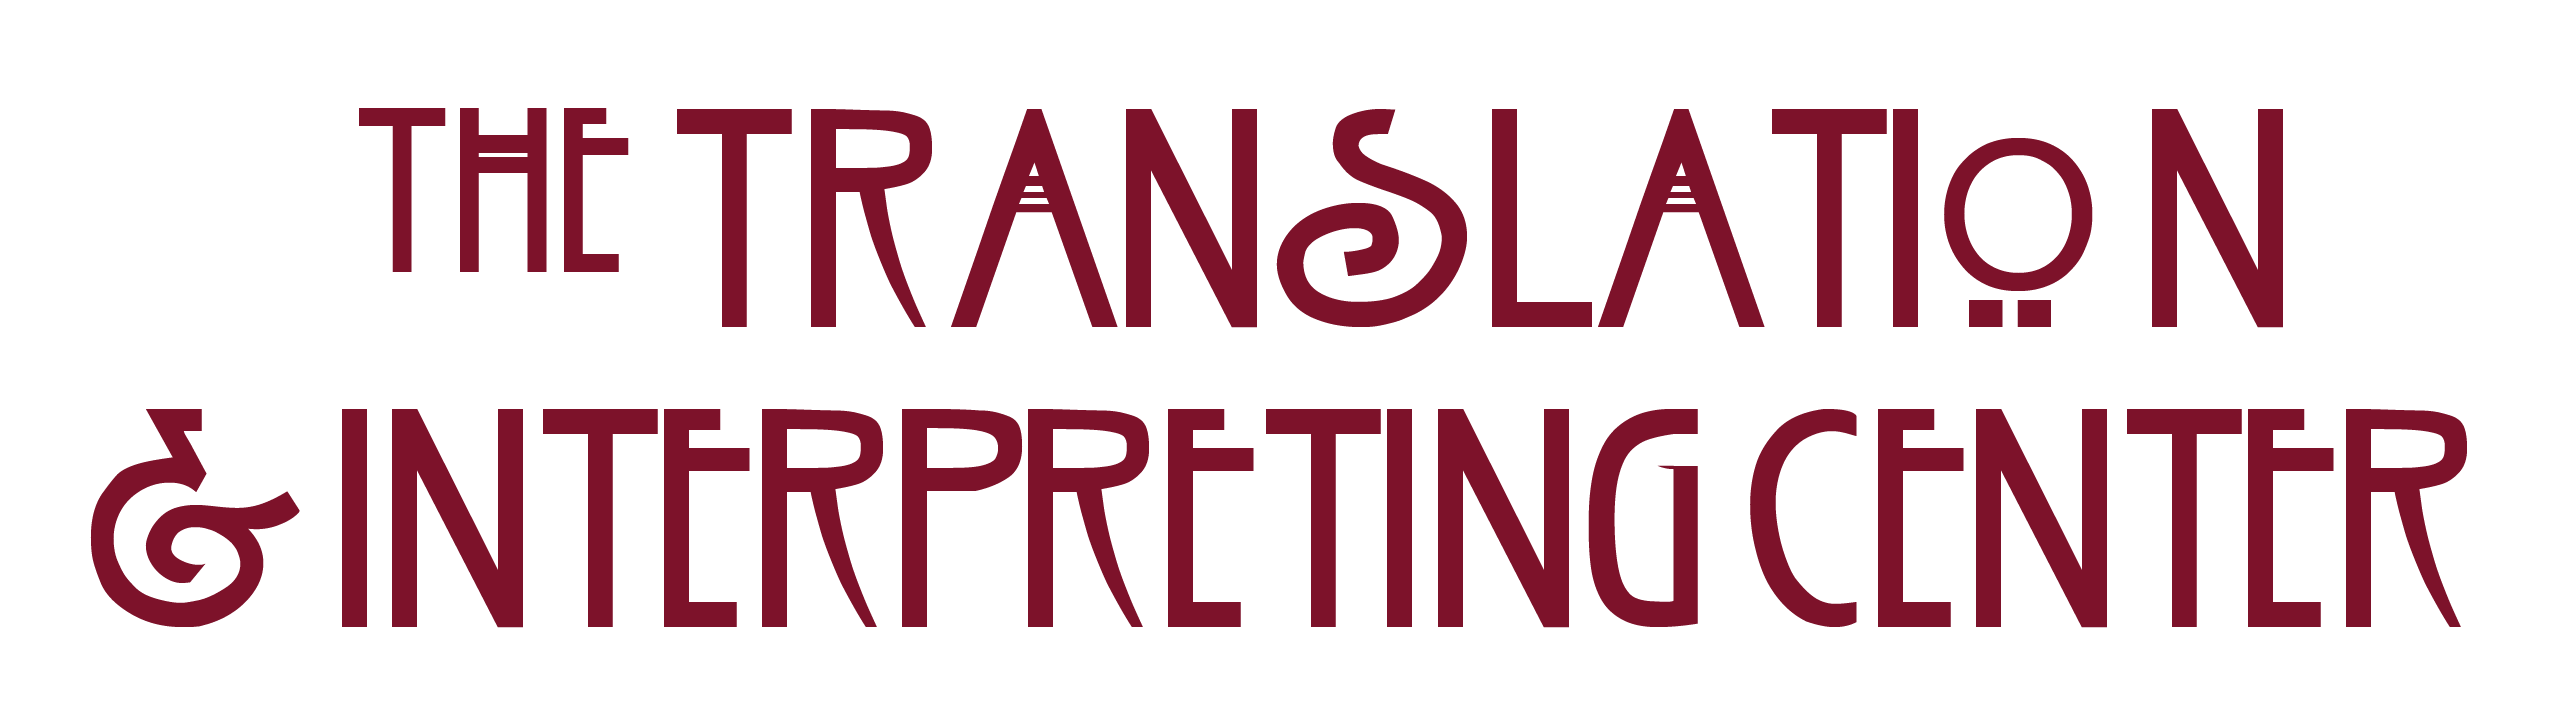 Translation & Interpreting Center of Denver